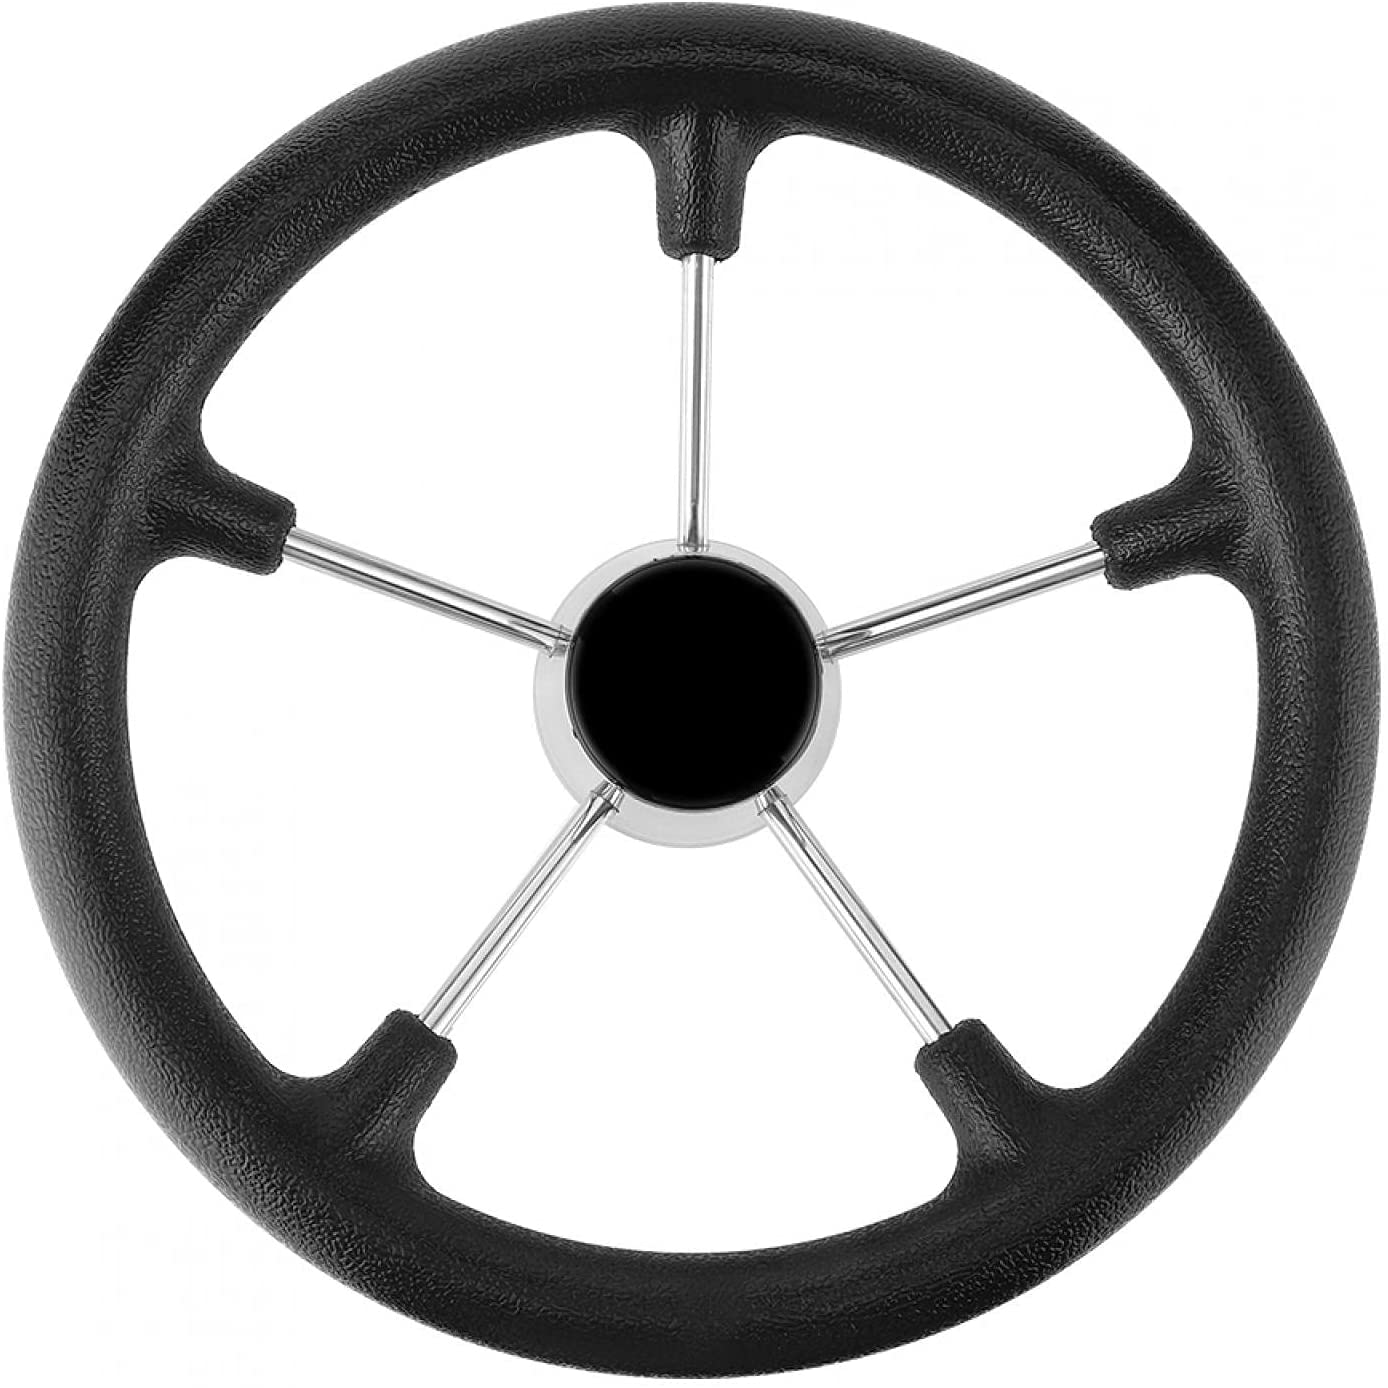 Shipenophy 5 Popular shop is the Complete Free Shipping lowest price challenge Spokes Steering Wheel I Boat 13-1 2